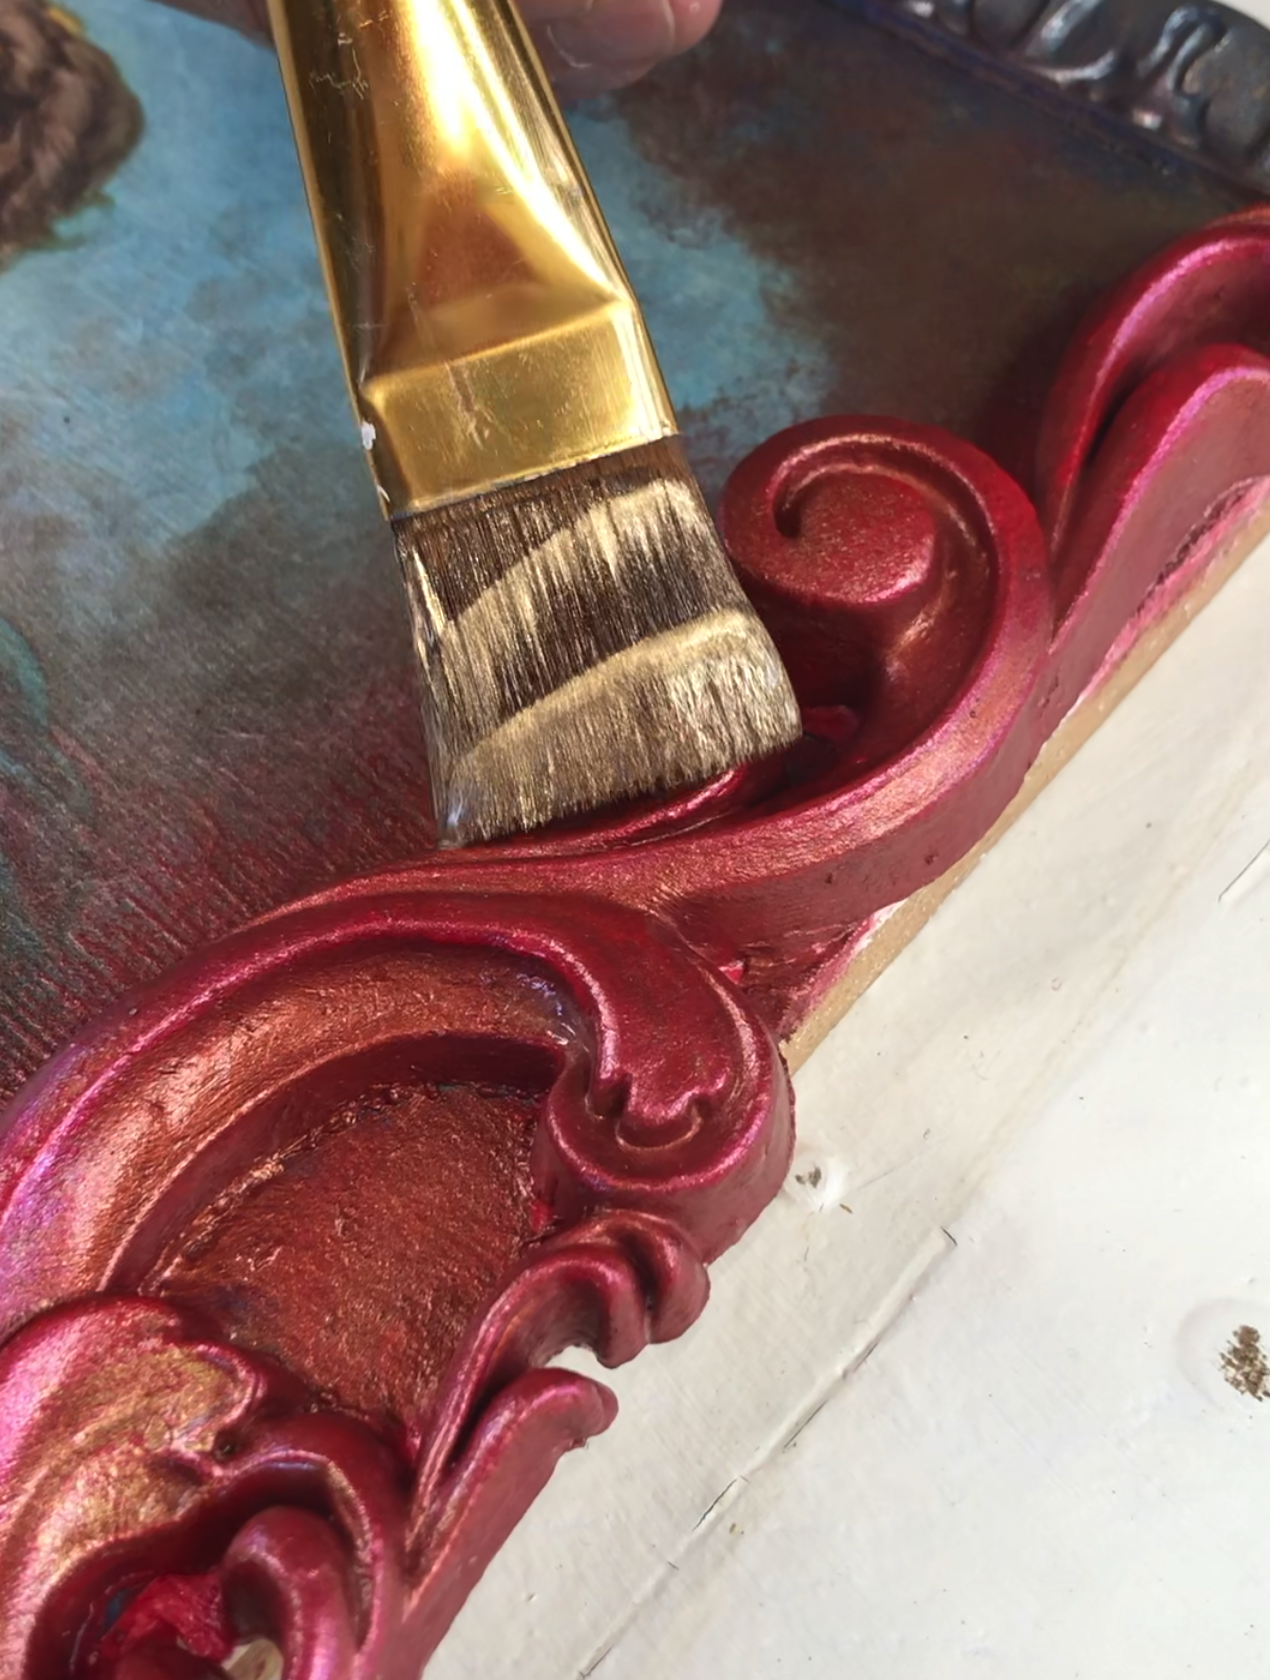 A close up of the 6069 woodubend moulding being painted with the gold posh chalk aqua patina